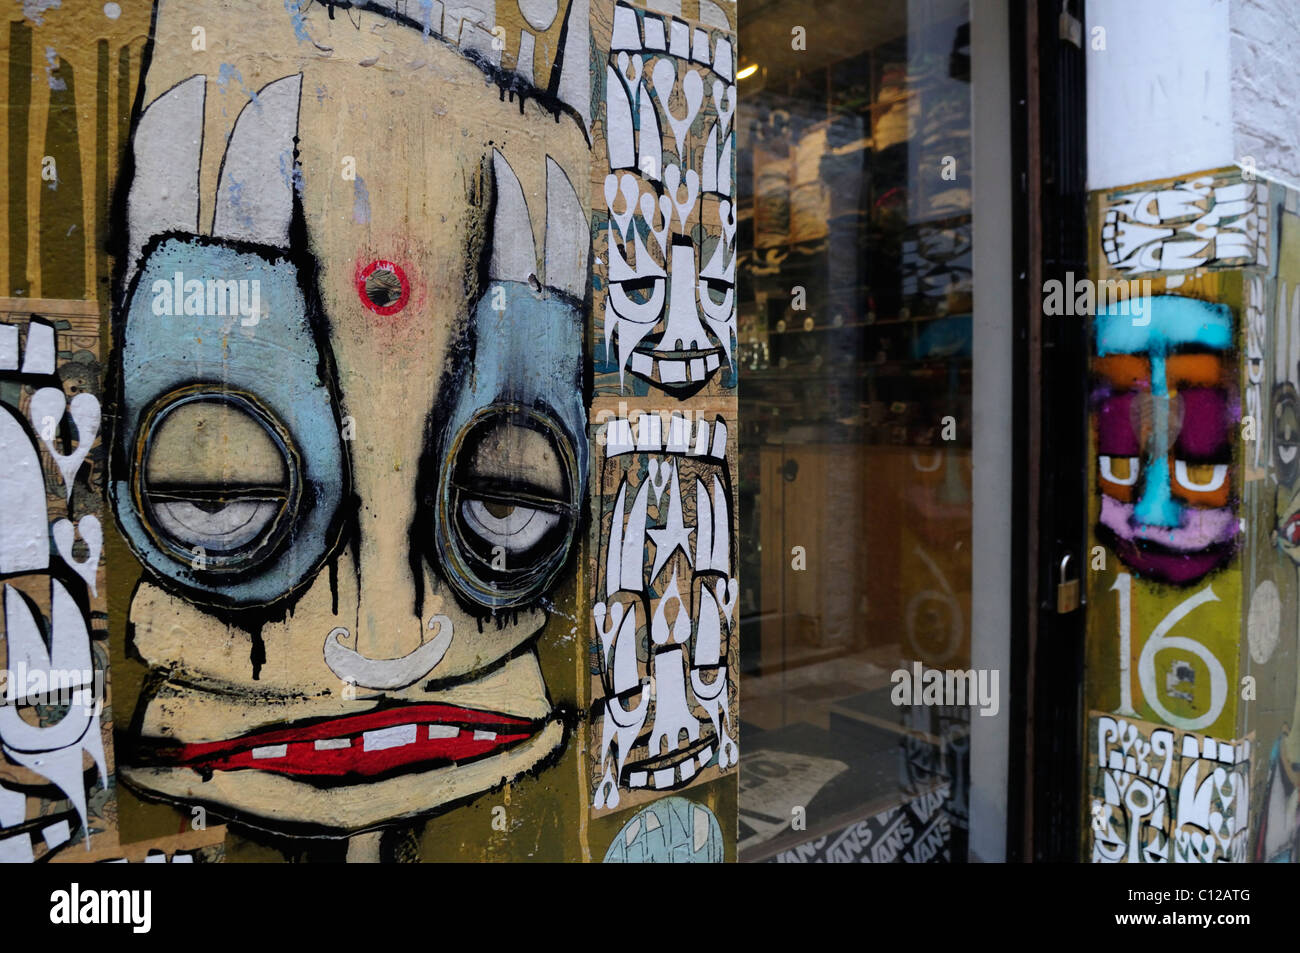 Graffiti on a Skateboarding Shop, Neal\'s Yard, Covent Garden Stock ...